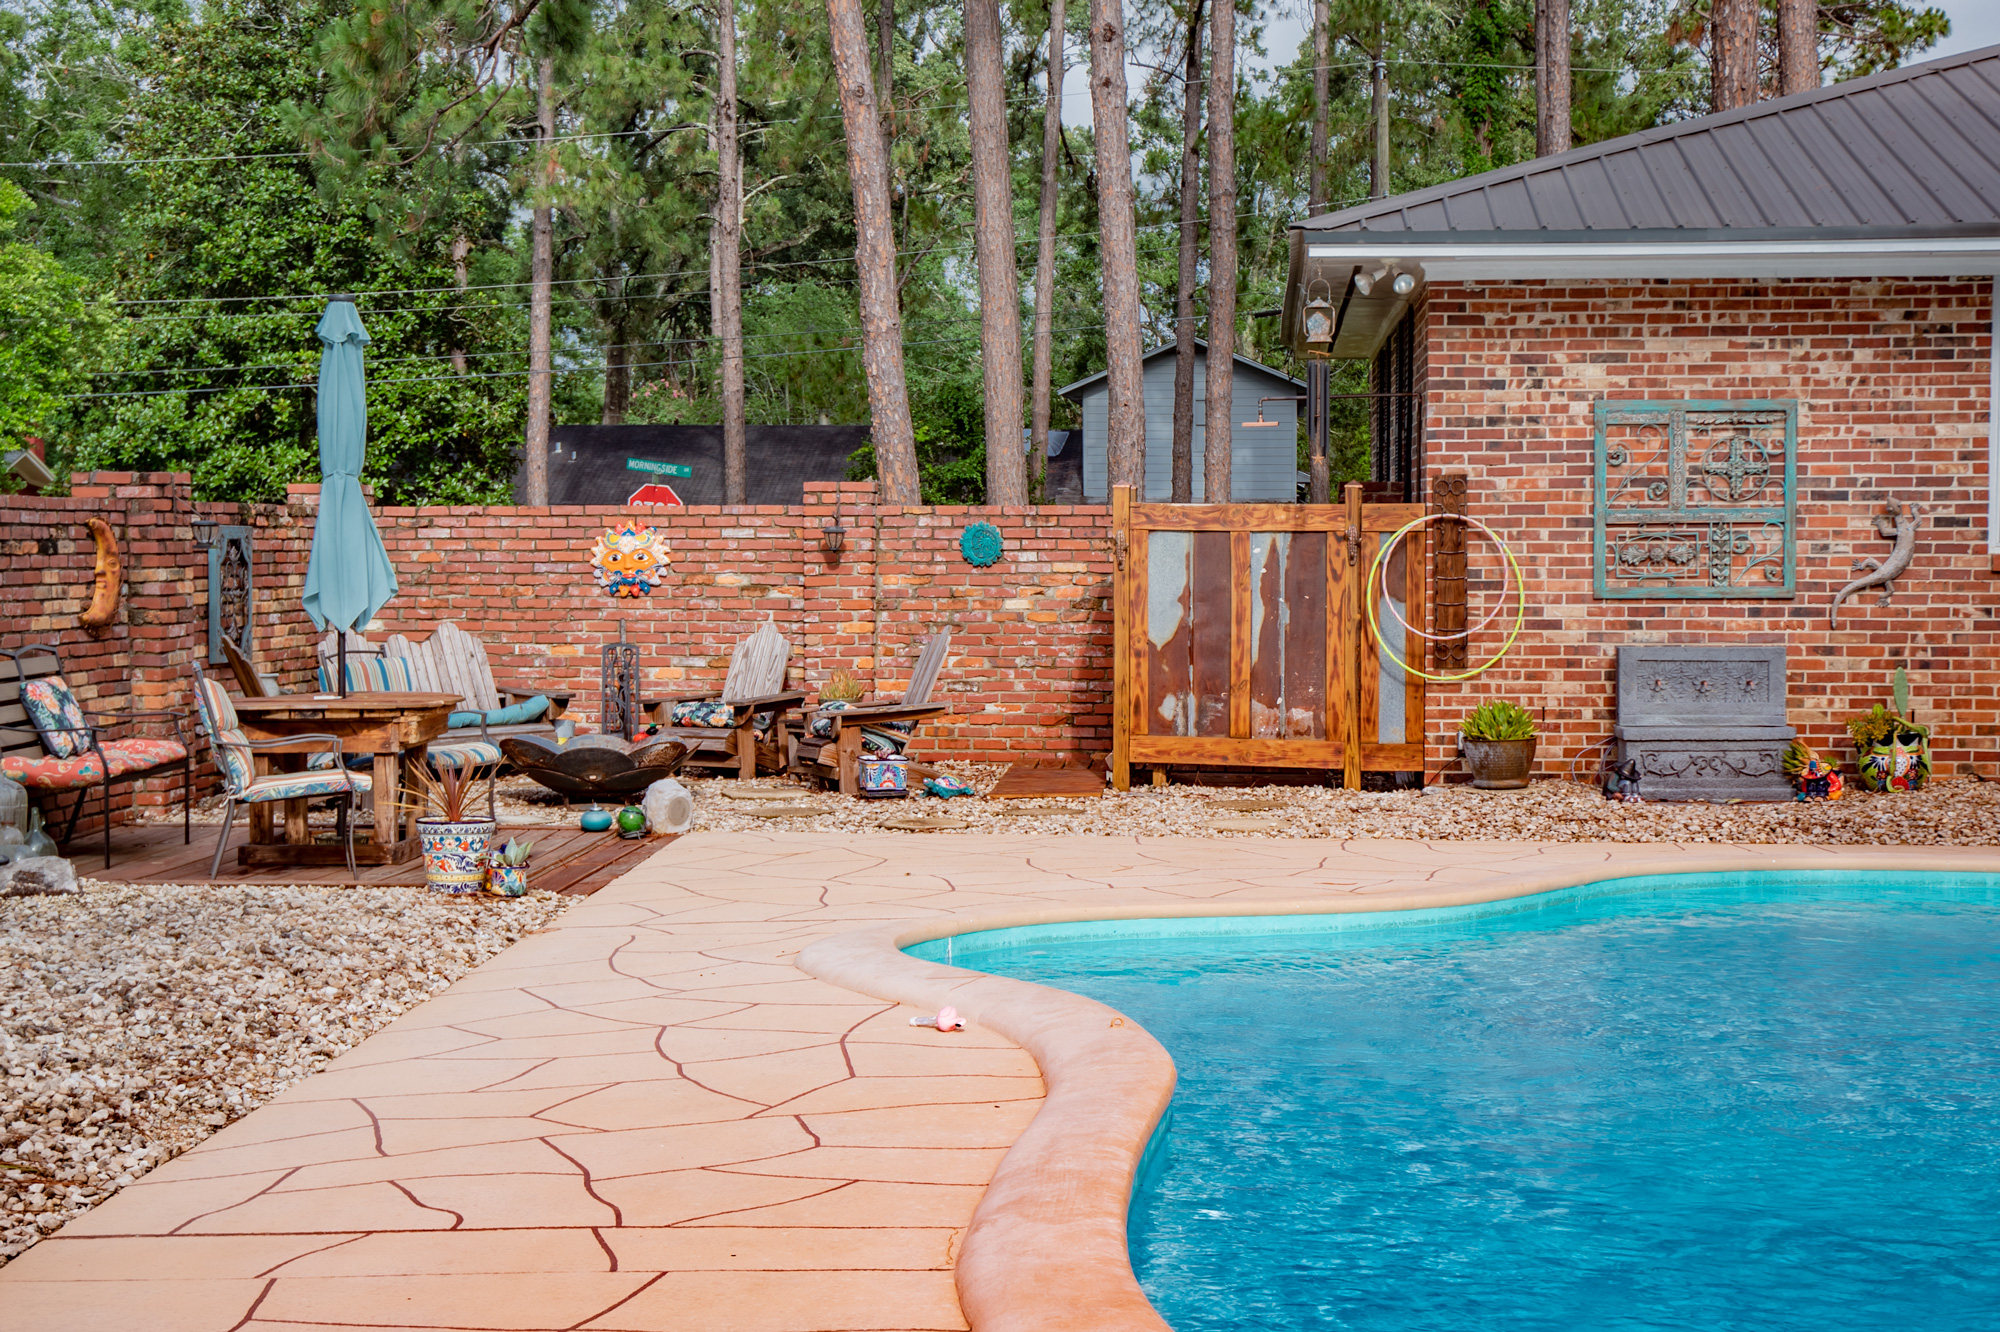 3-rivers-realty,3rr,911-morningside-drive,bainbridge-real-estate,bainbridggarealestate,mills-brock,three-rivers-realty,pool-fire-pit-shower.jpg